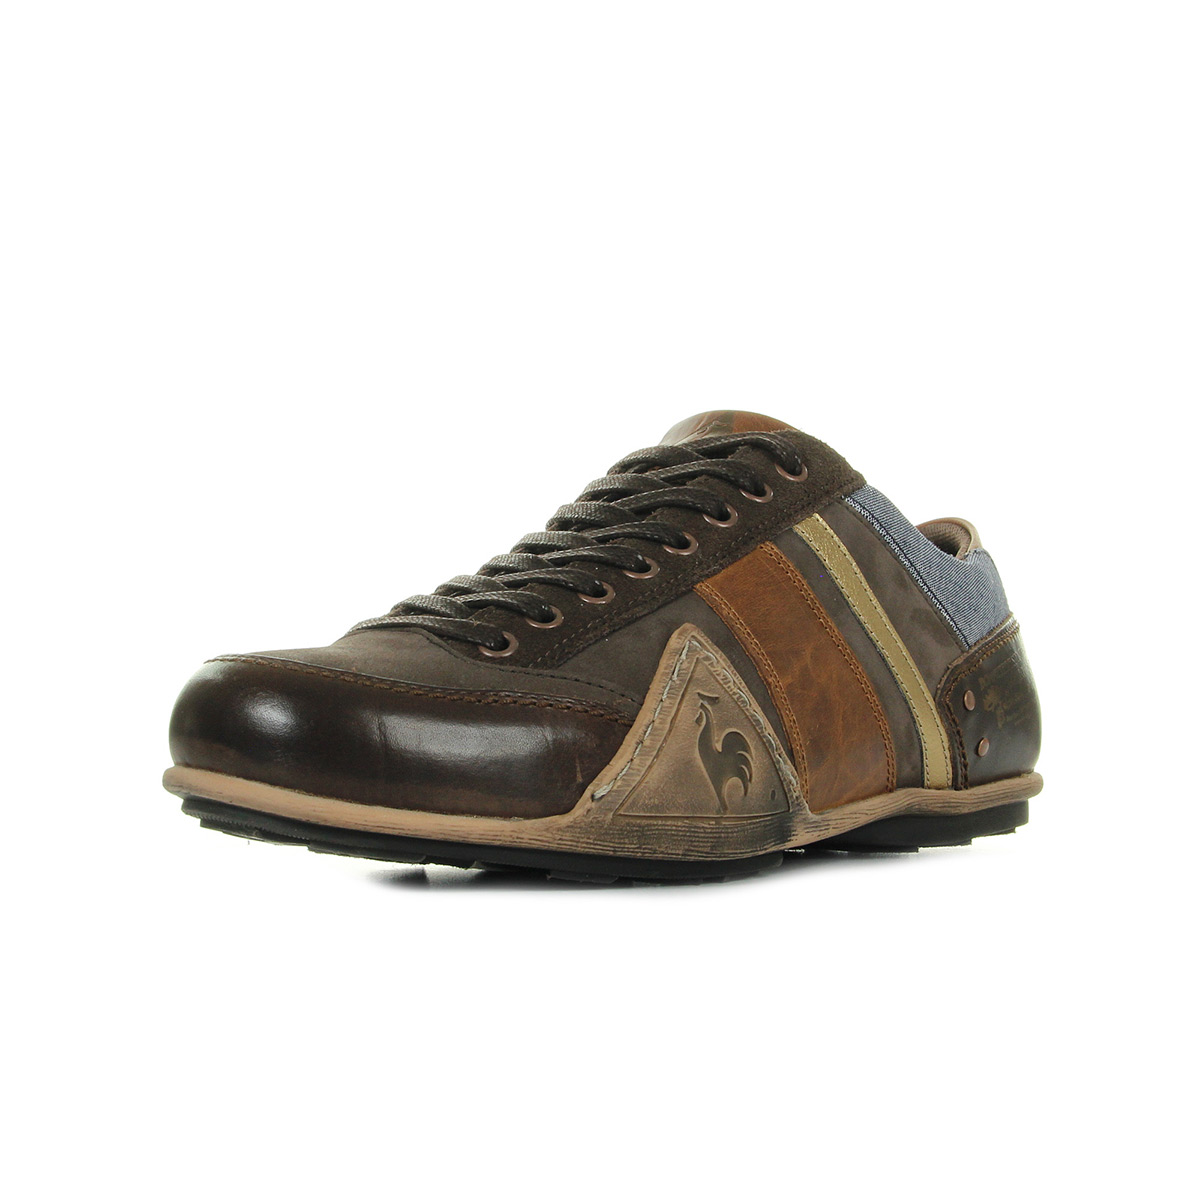 Le Sportif Mode Turin Homme Baskets Chambray Leather Coq 1810569 rrwq5FZ